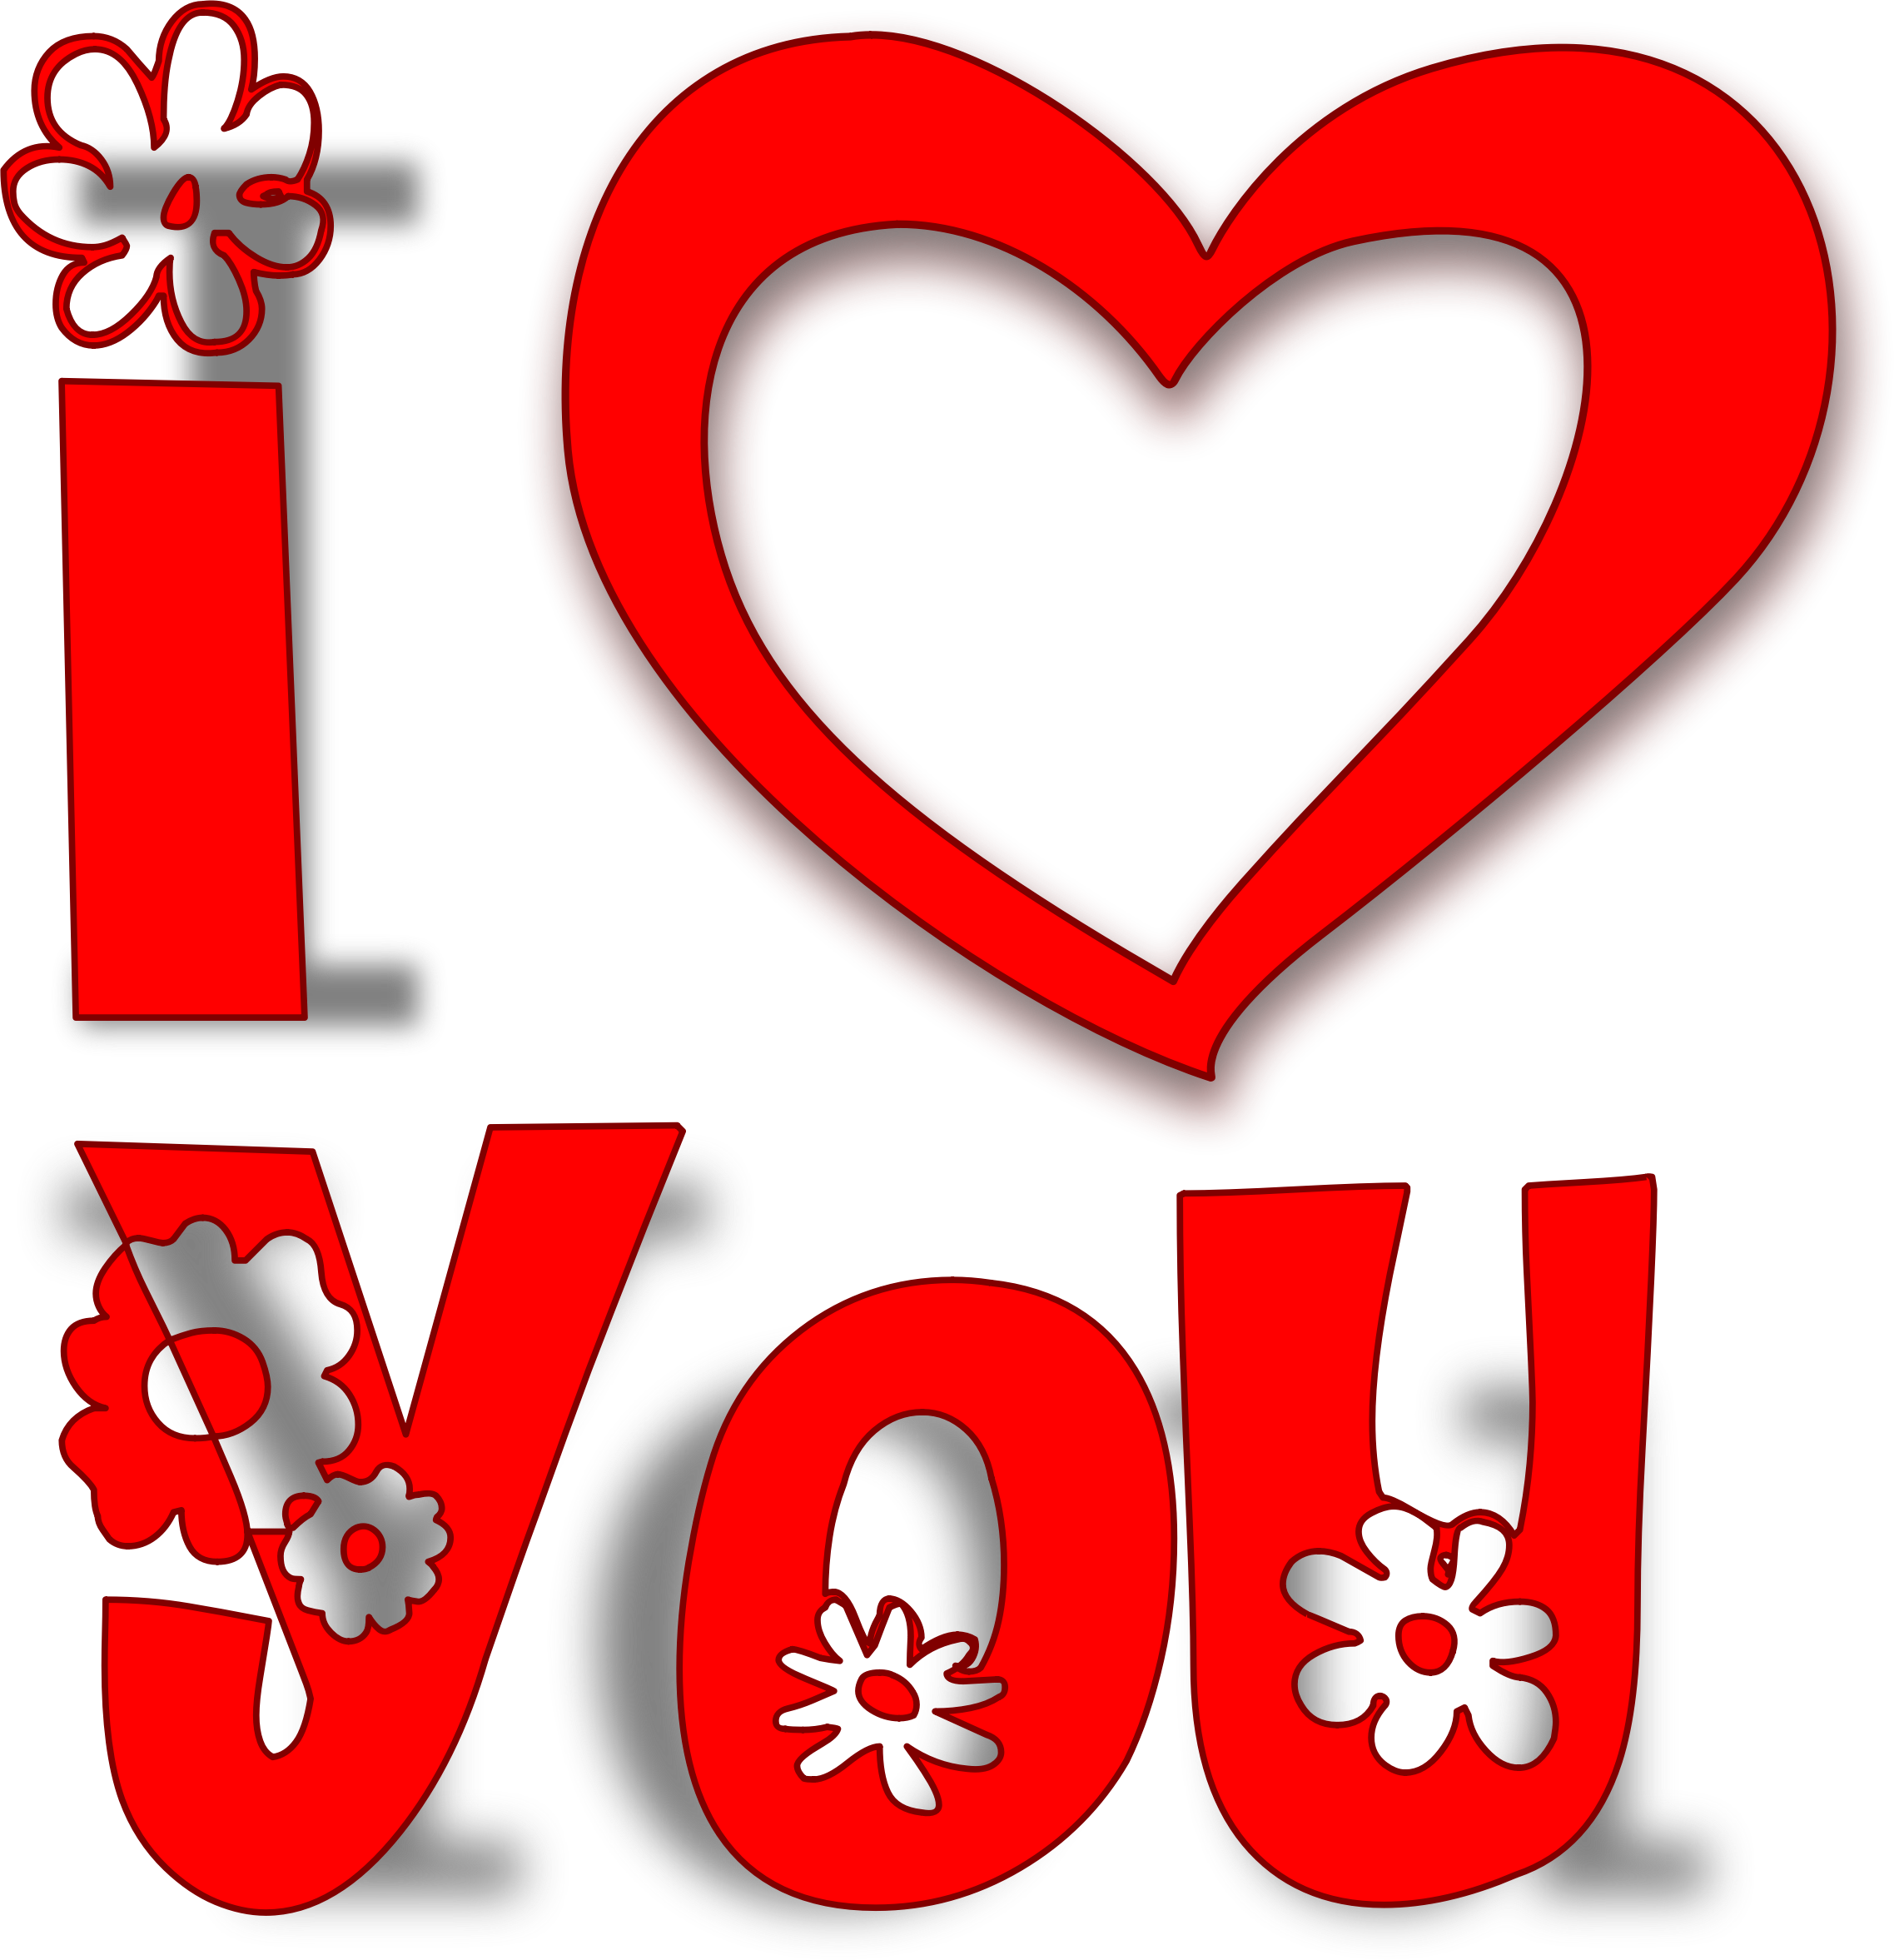 I heart clipart image royalty free stock I Heart Clip Art - gucciguanfangwang.me image royalty free stock